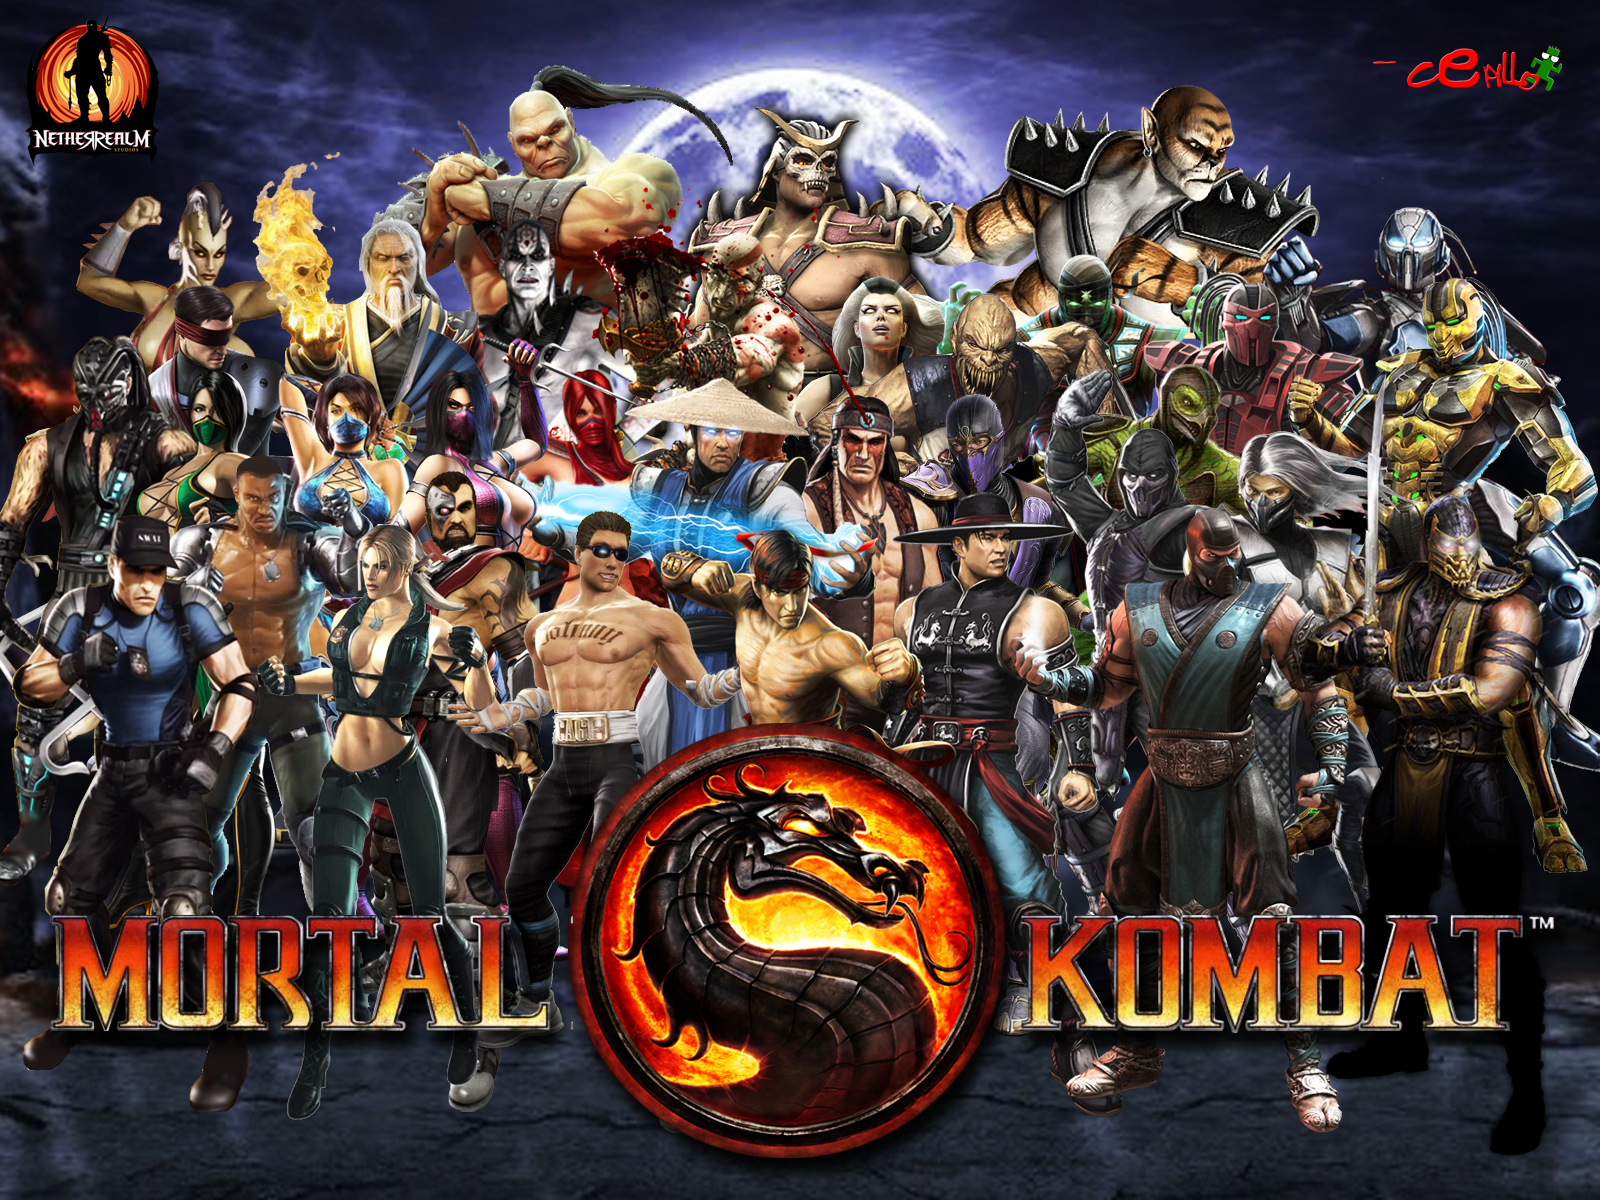 Mortal bet at home Interactive Entertainment AG adresse Kombat 9 Characters